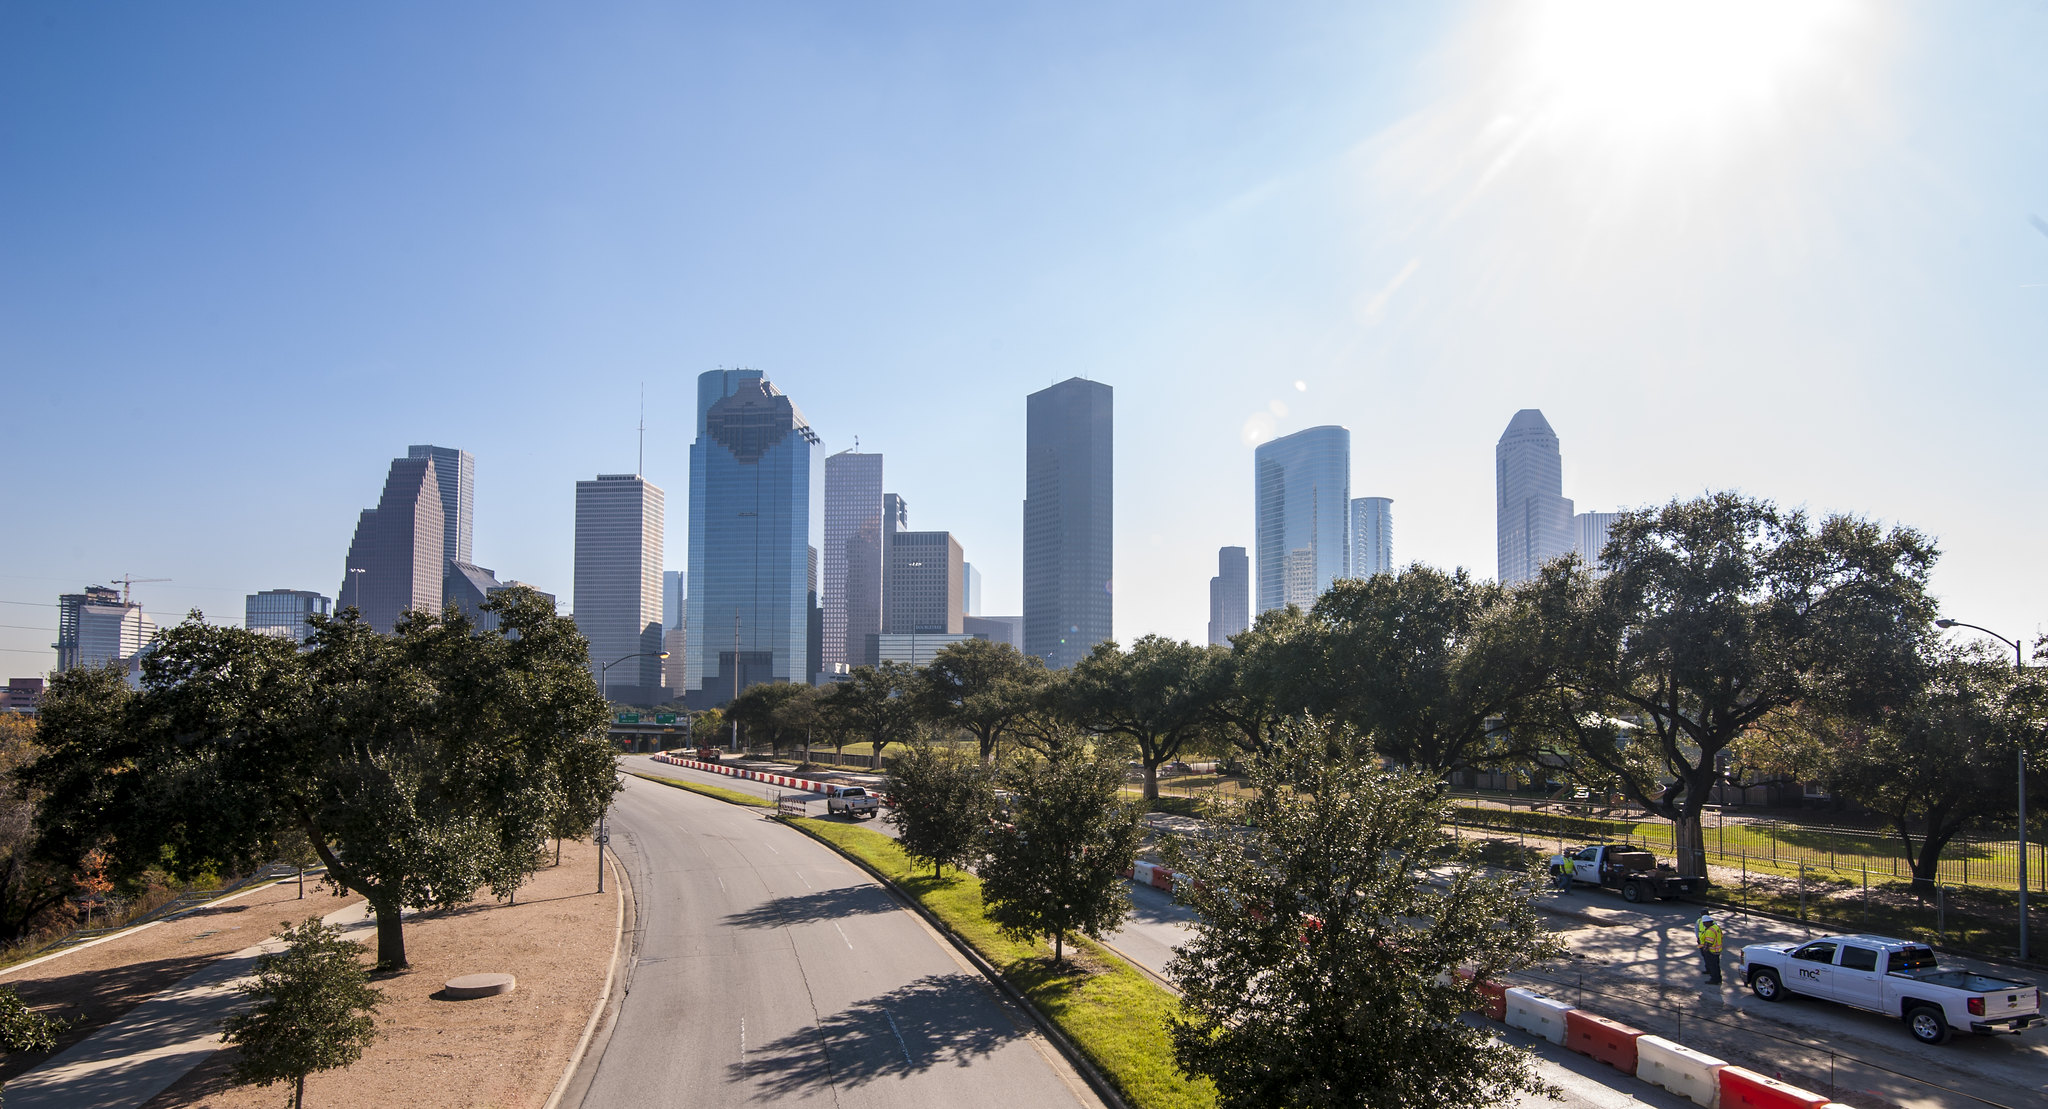 3 Texas cities among the top major metros with startup growth